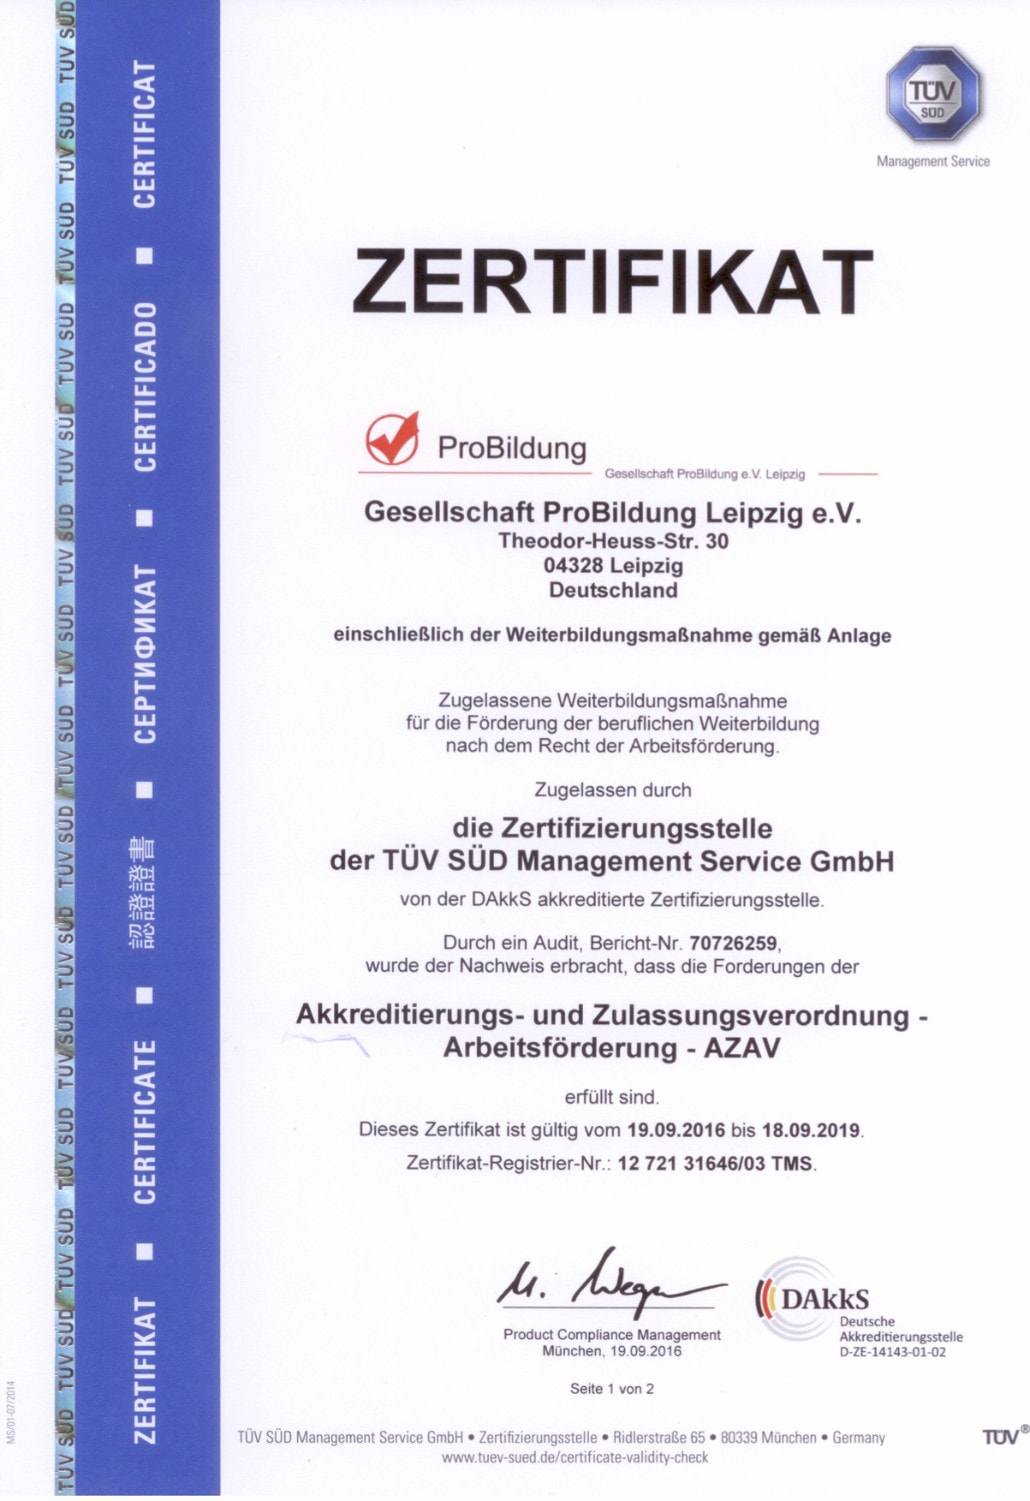 TÜV Zertifikat LMS Leipzig Medical School